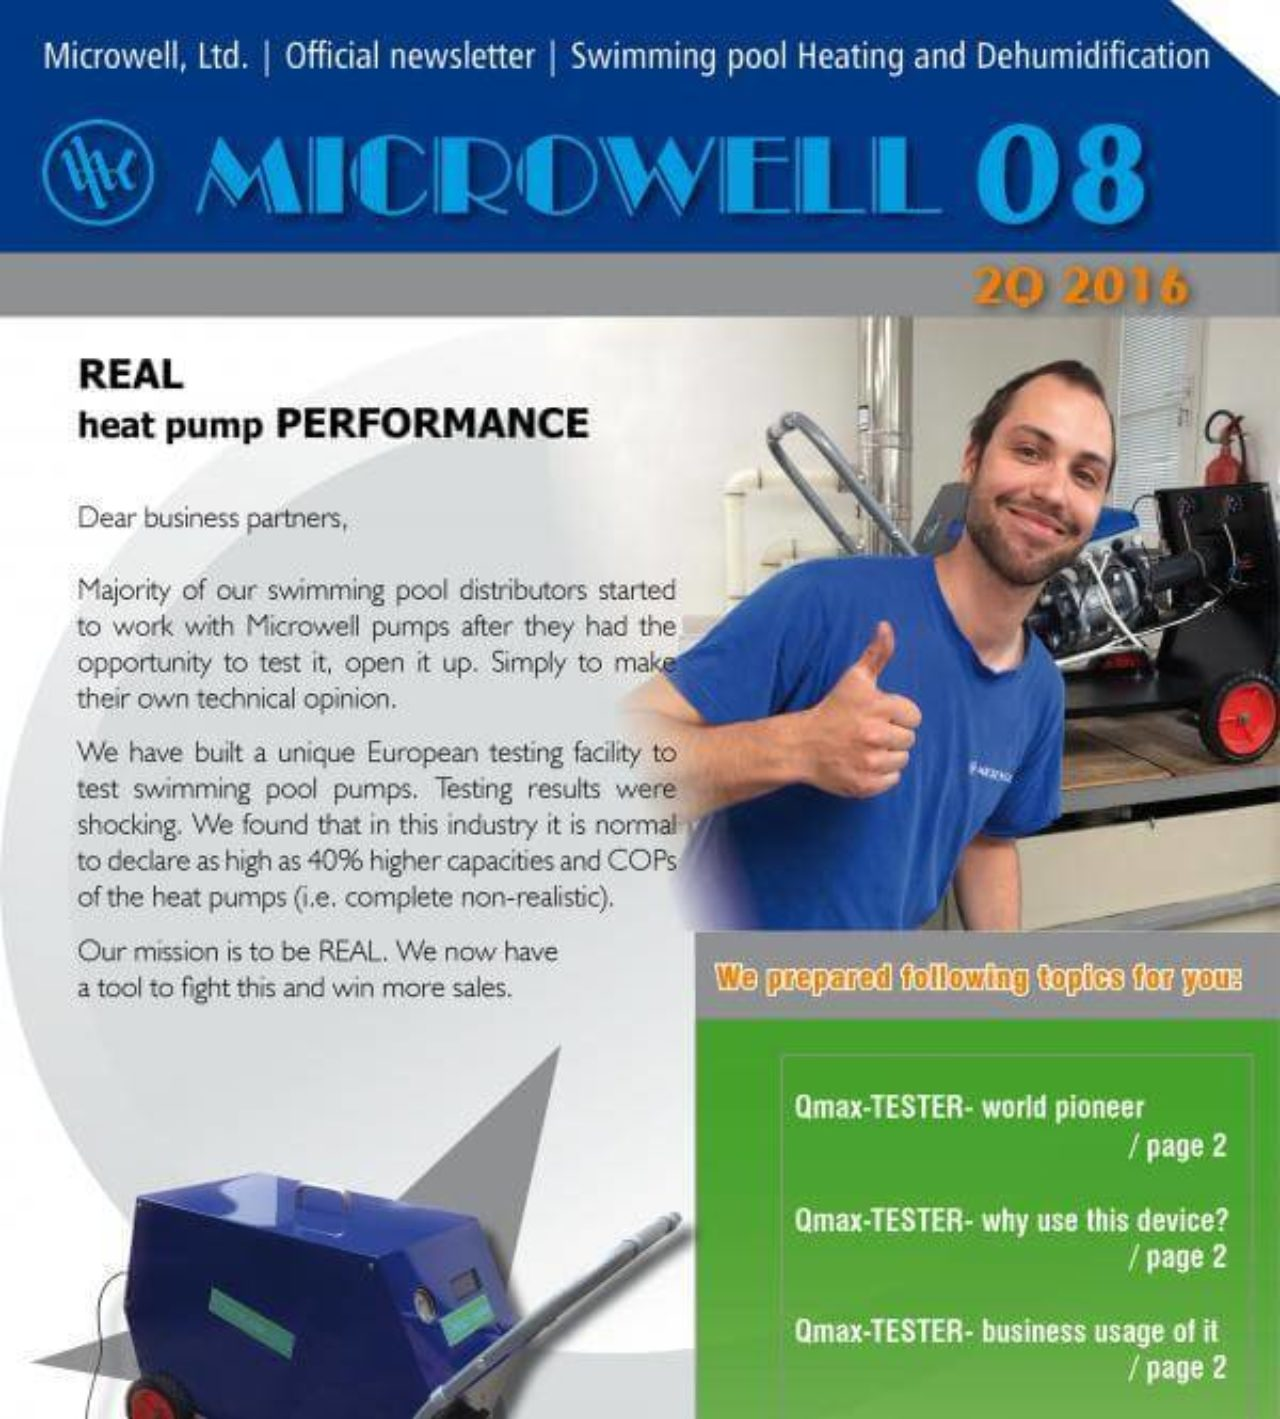 Microwell Newsletter 08/2016 | Blog - Microwell